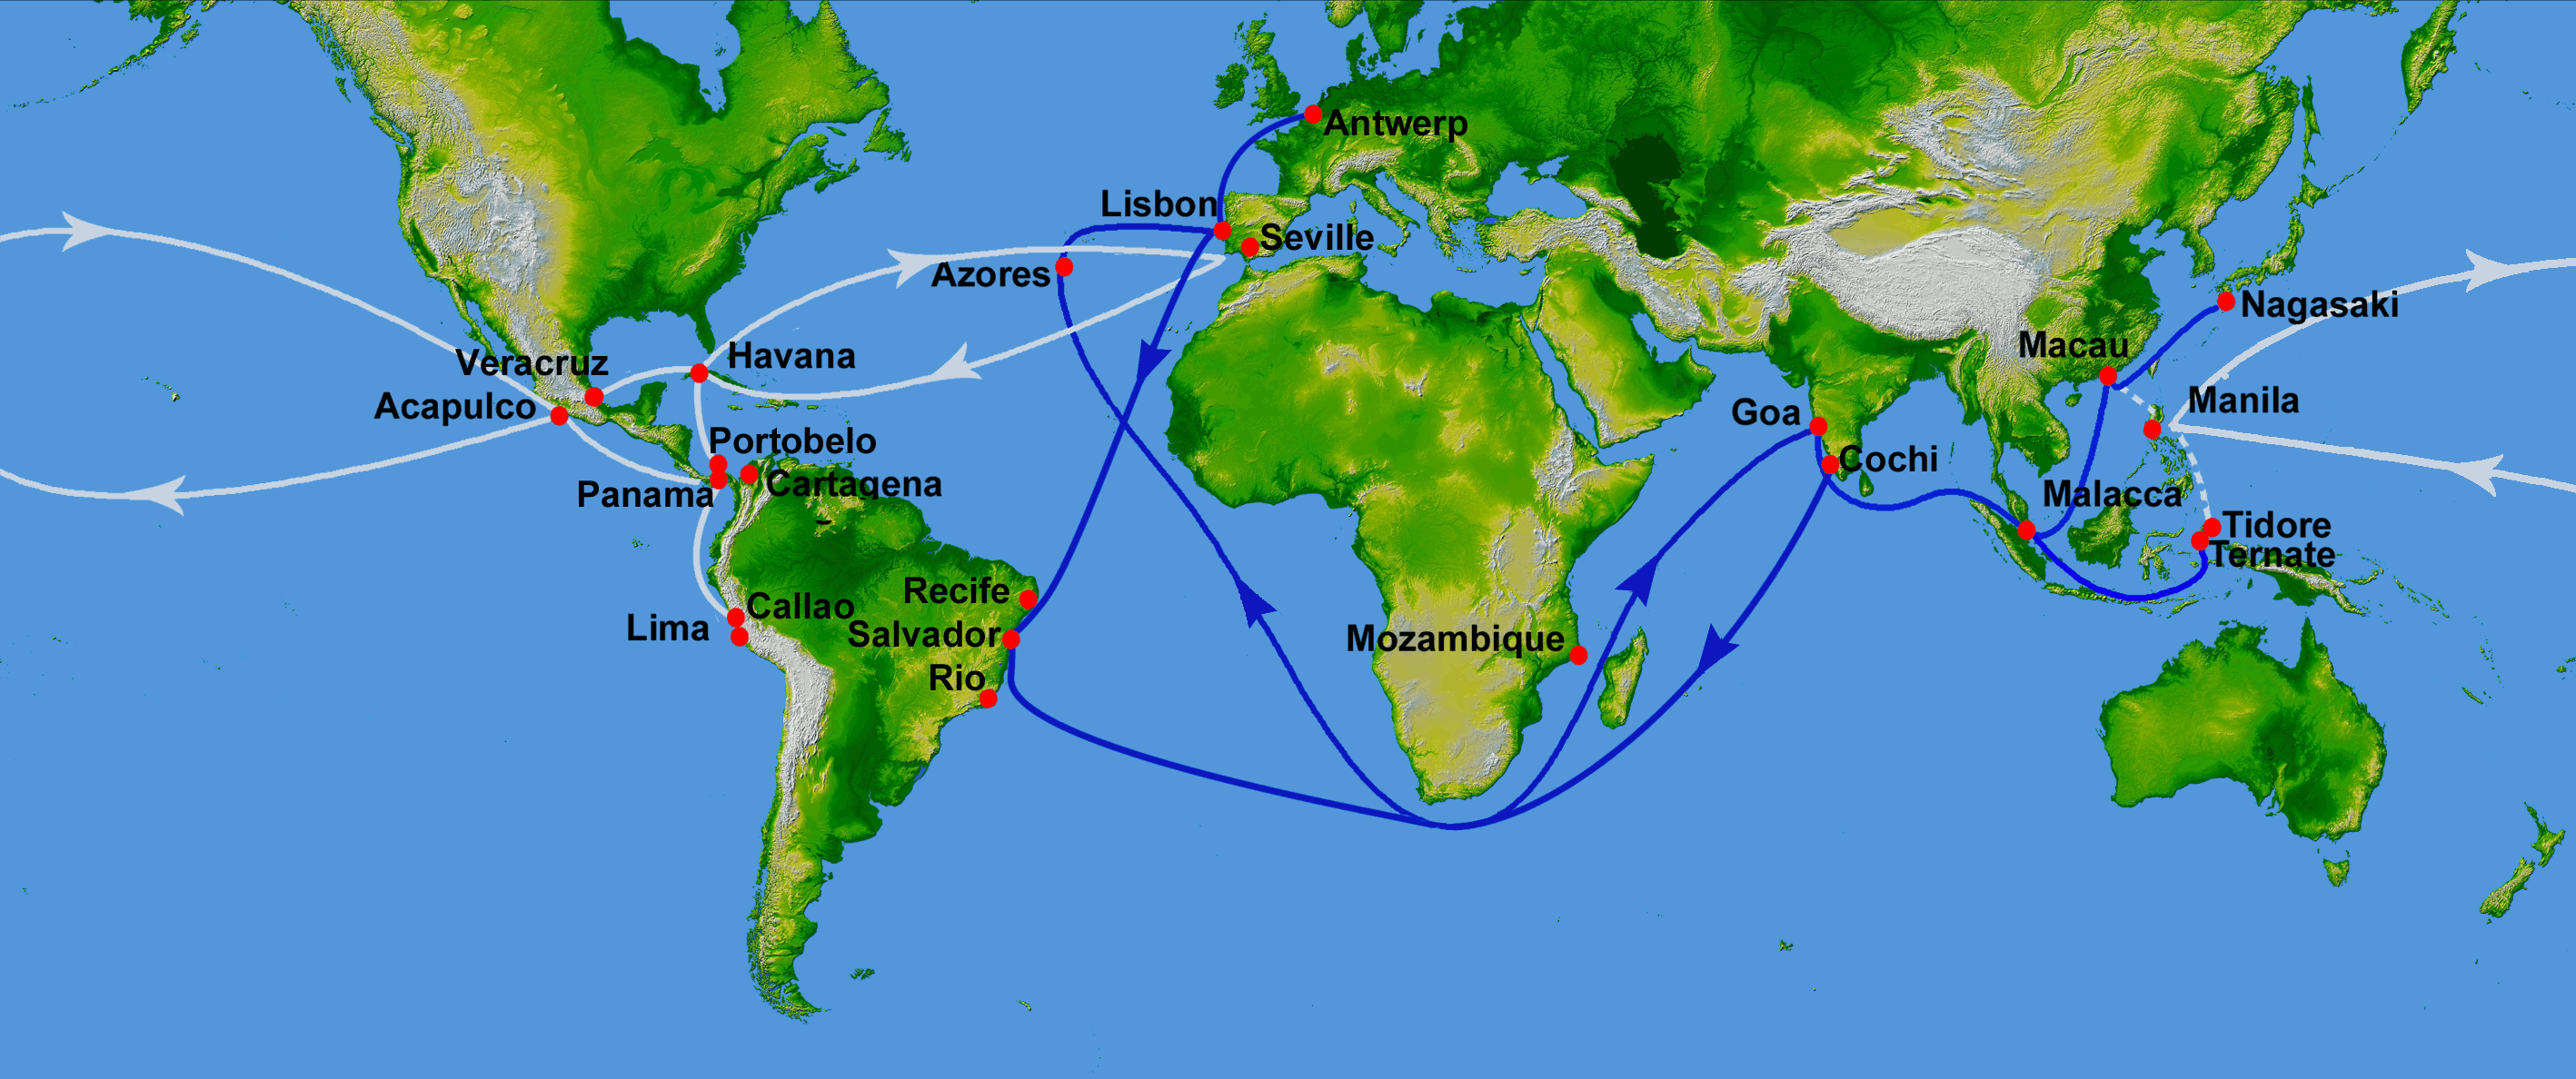 Ap world history european and arab explorers european and arab explorers difficult global trade routes digital image wikimedia np 15 may 2010 web 18 may 2016 gumiabroncs Image collections